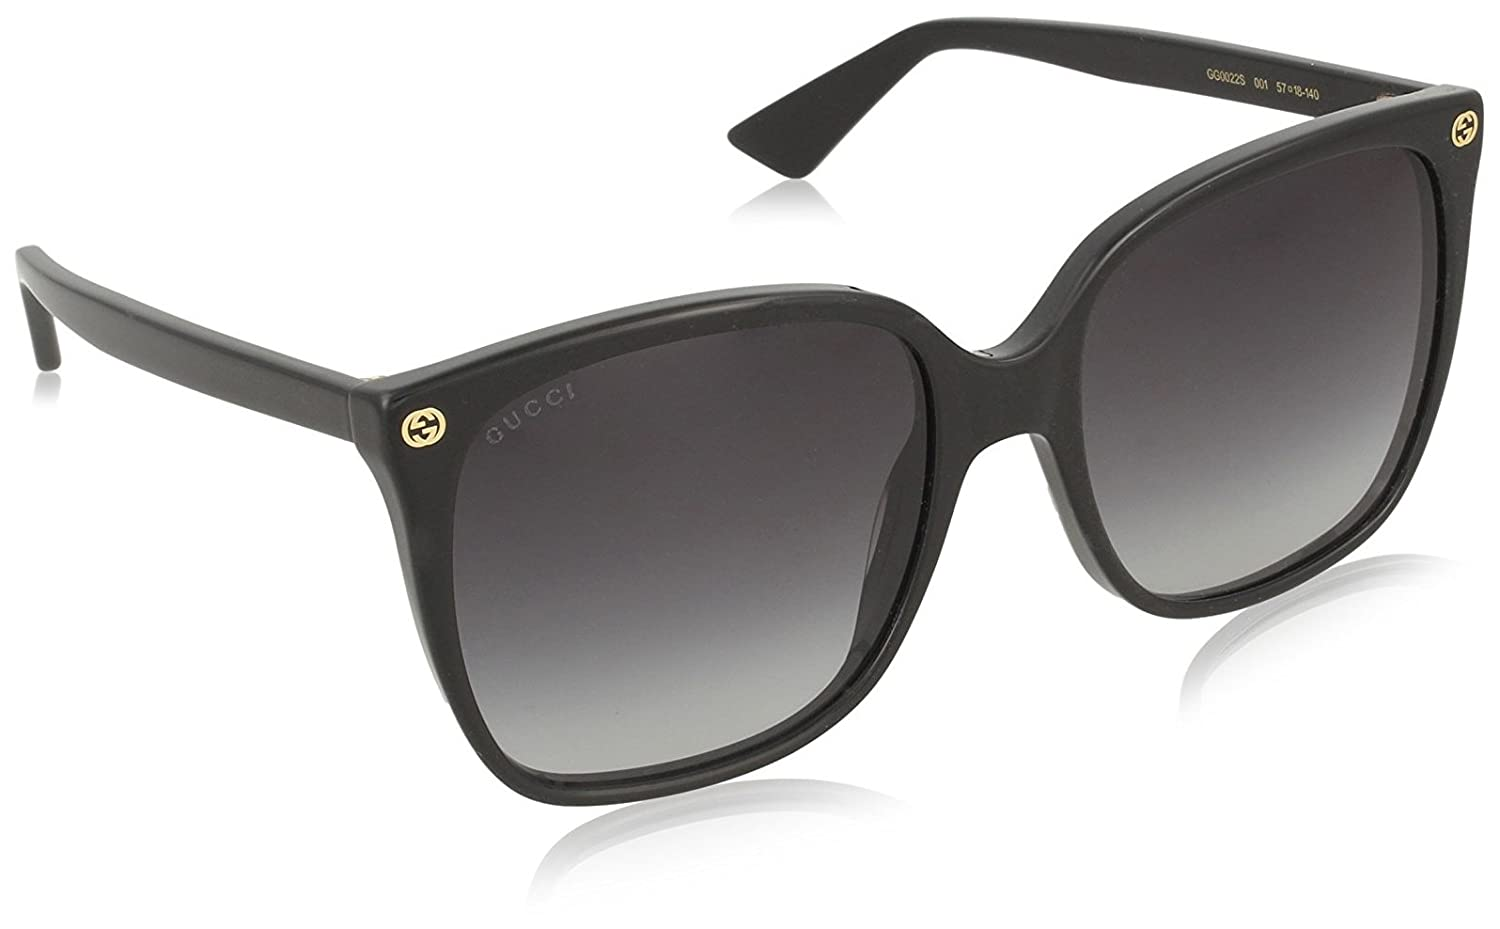 Gucci Women Gg0022 S 57 Black/Grey Sunglasses 57mm by Gucci